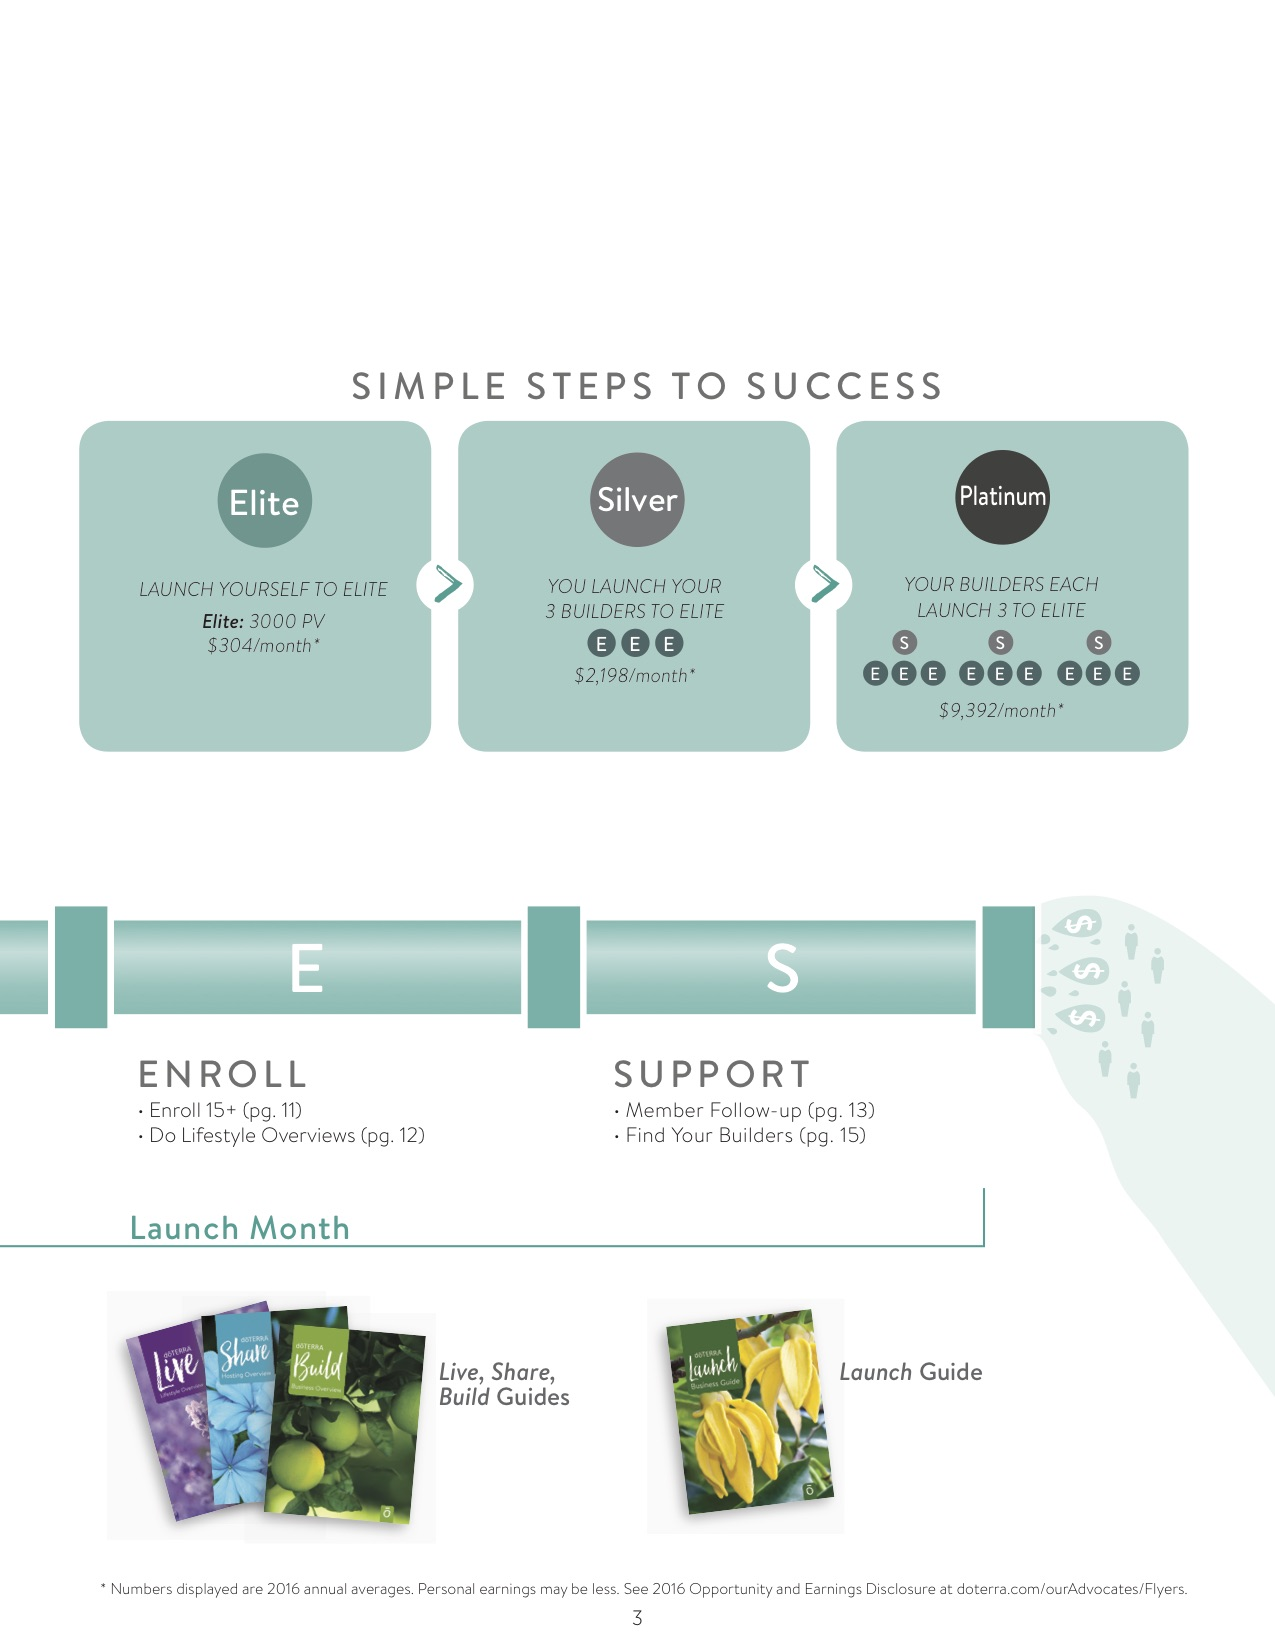 empowered-success-launch-guide 3.jpg